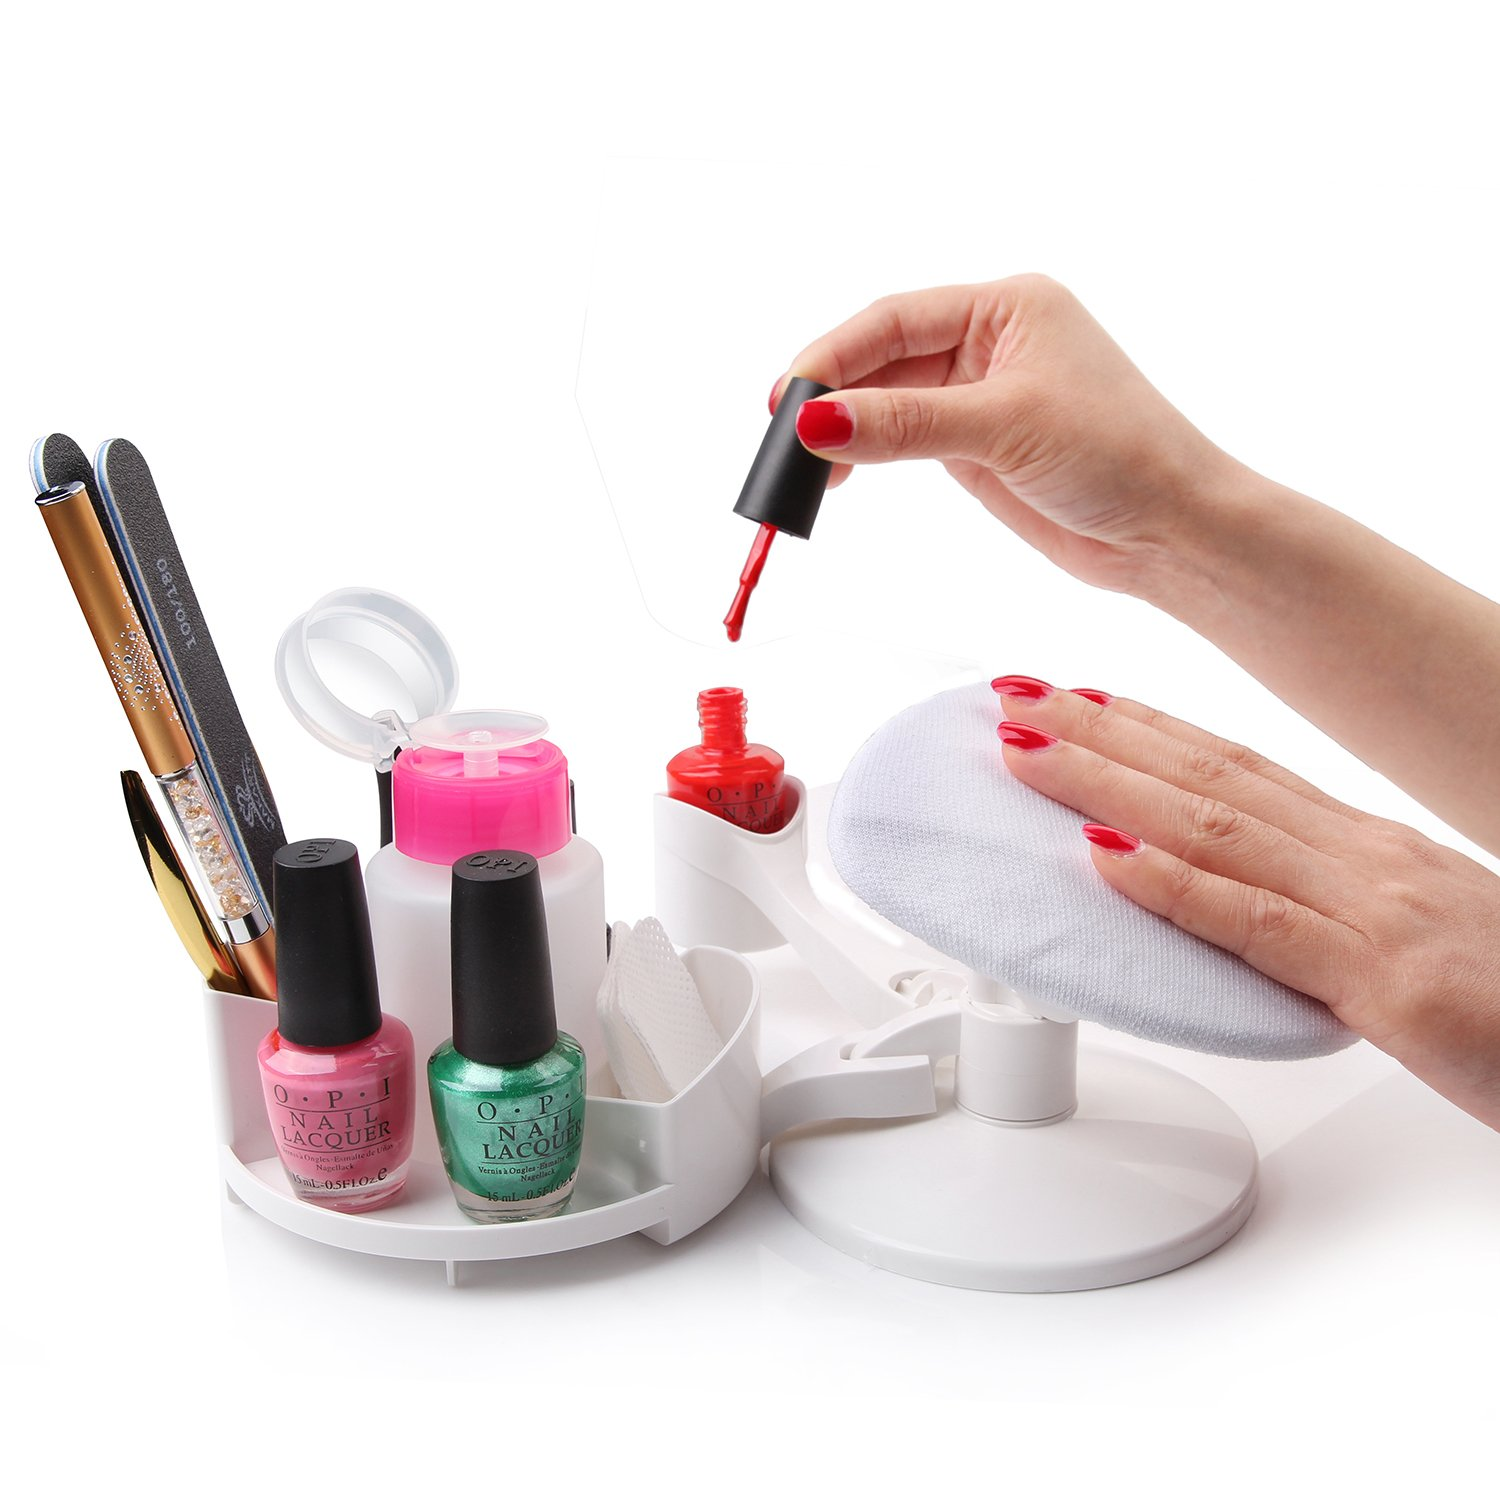 Makartt Nail Base Manicure Pedicure Studio with Accessory Holder and Multi angle Rest- for Home DIY Nail Art